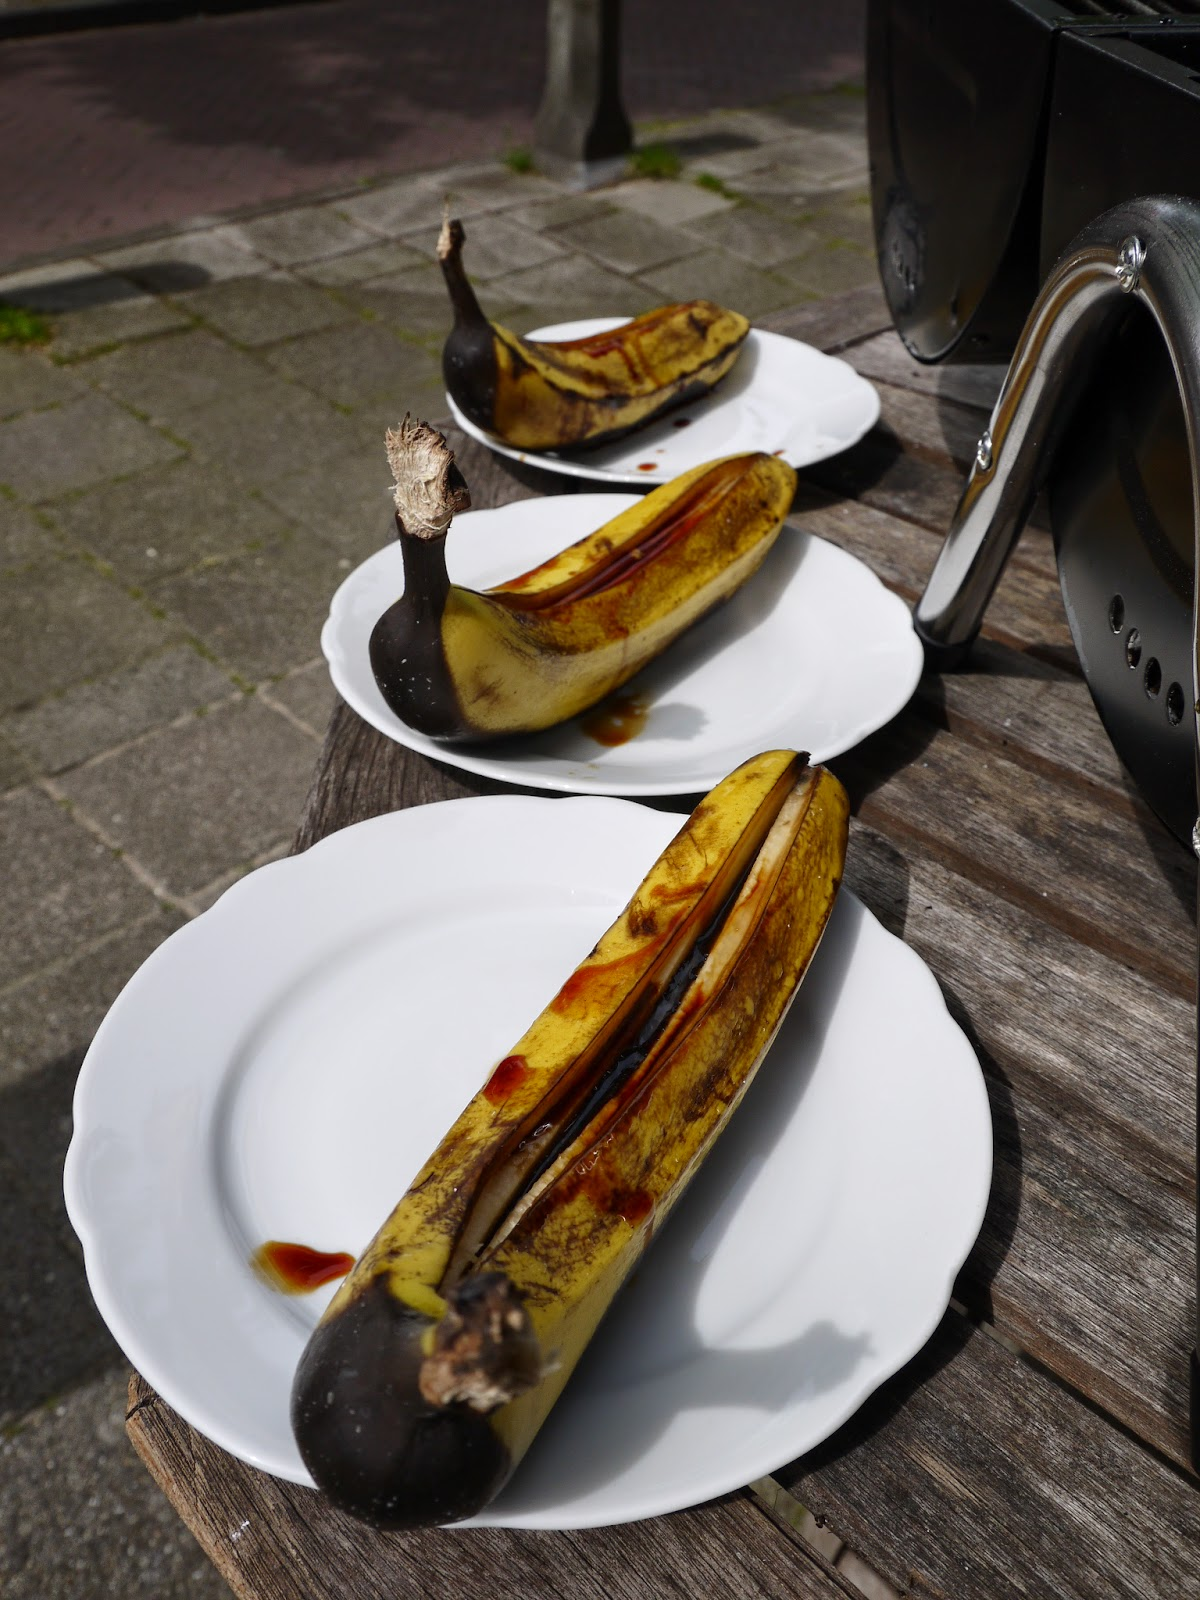 Surprising grilled bananas recipe by Appetit Voyage